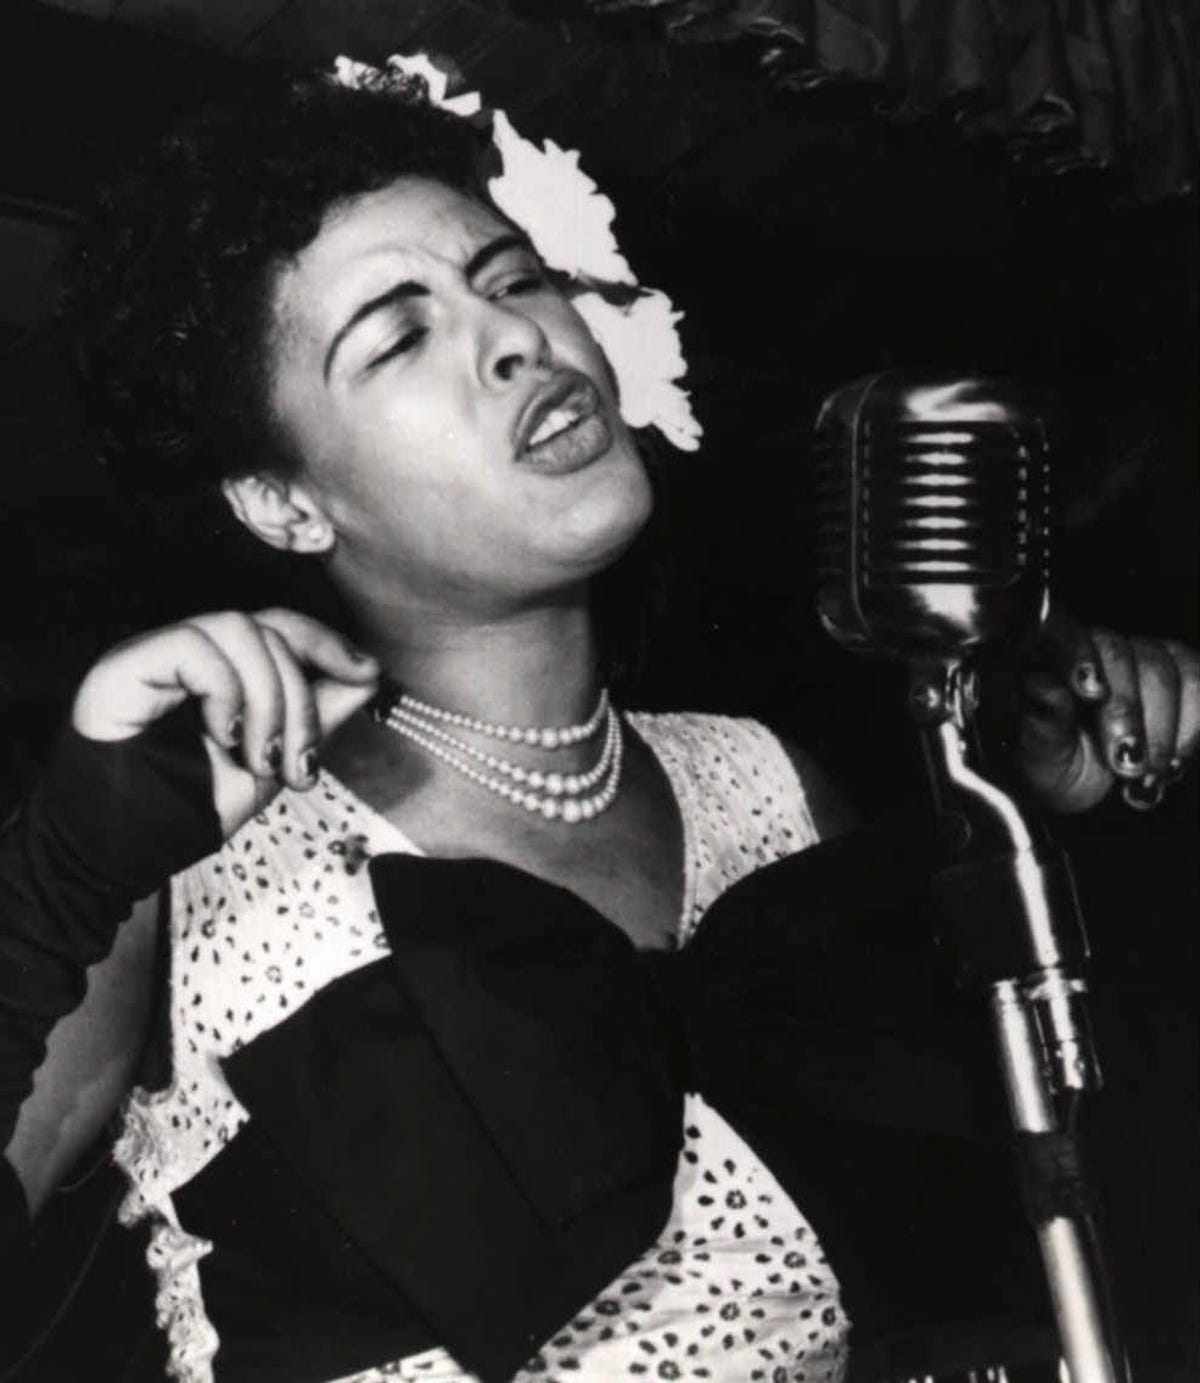 100 facts about Billie Holiday's life and legacy